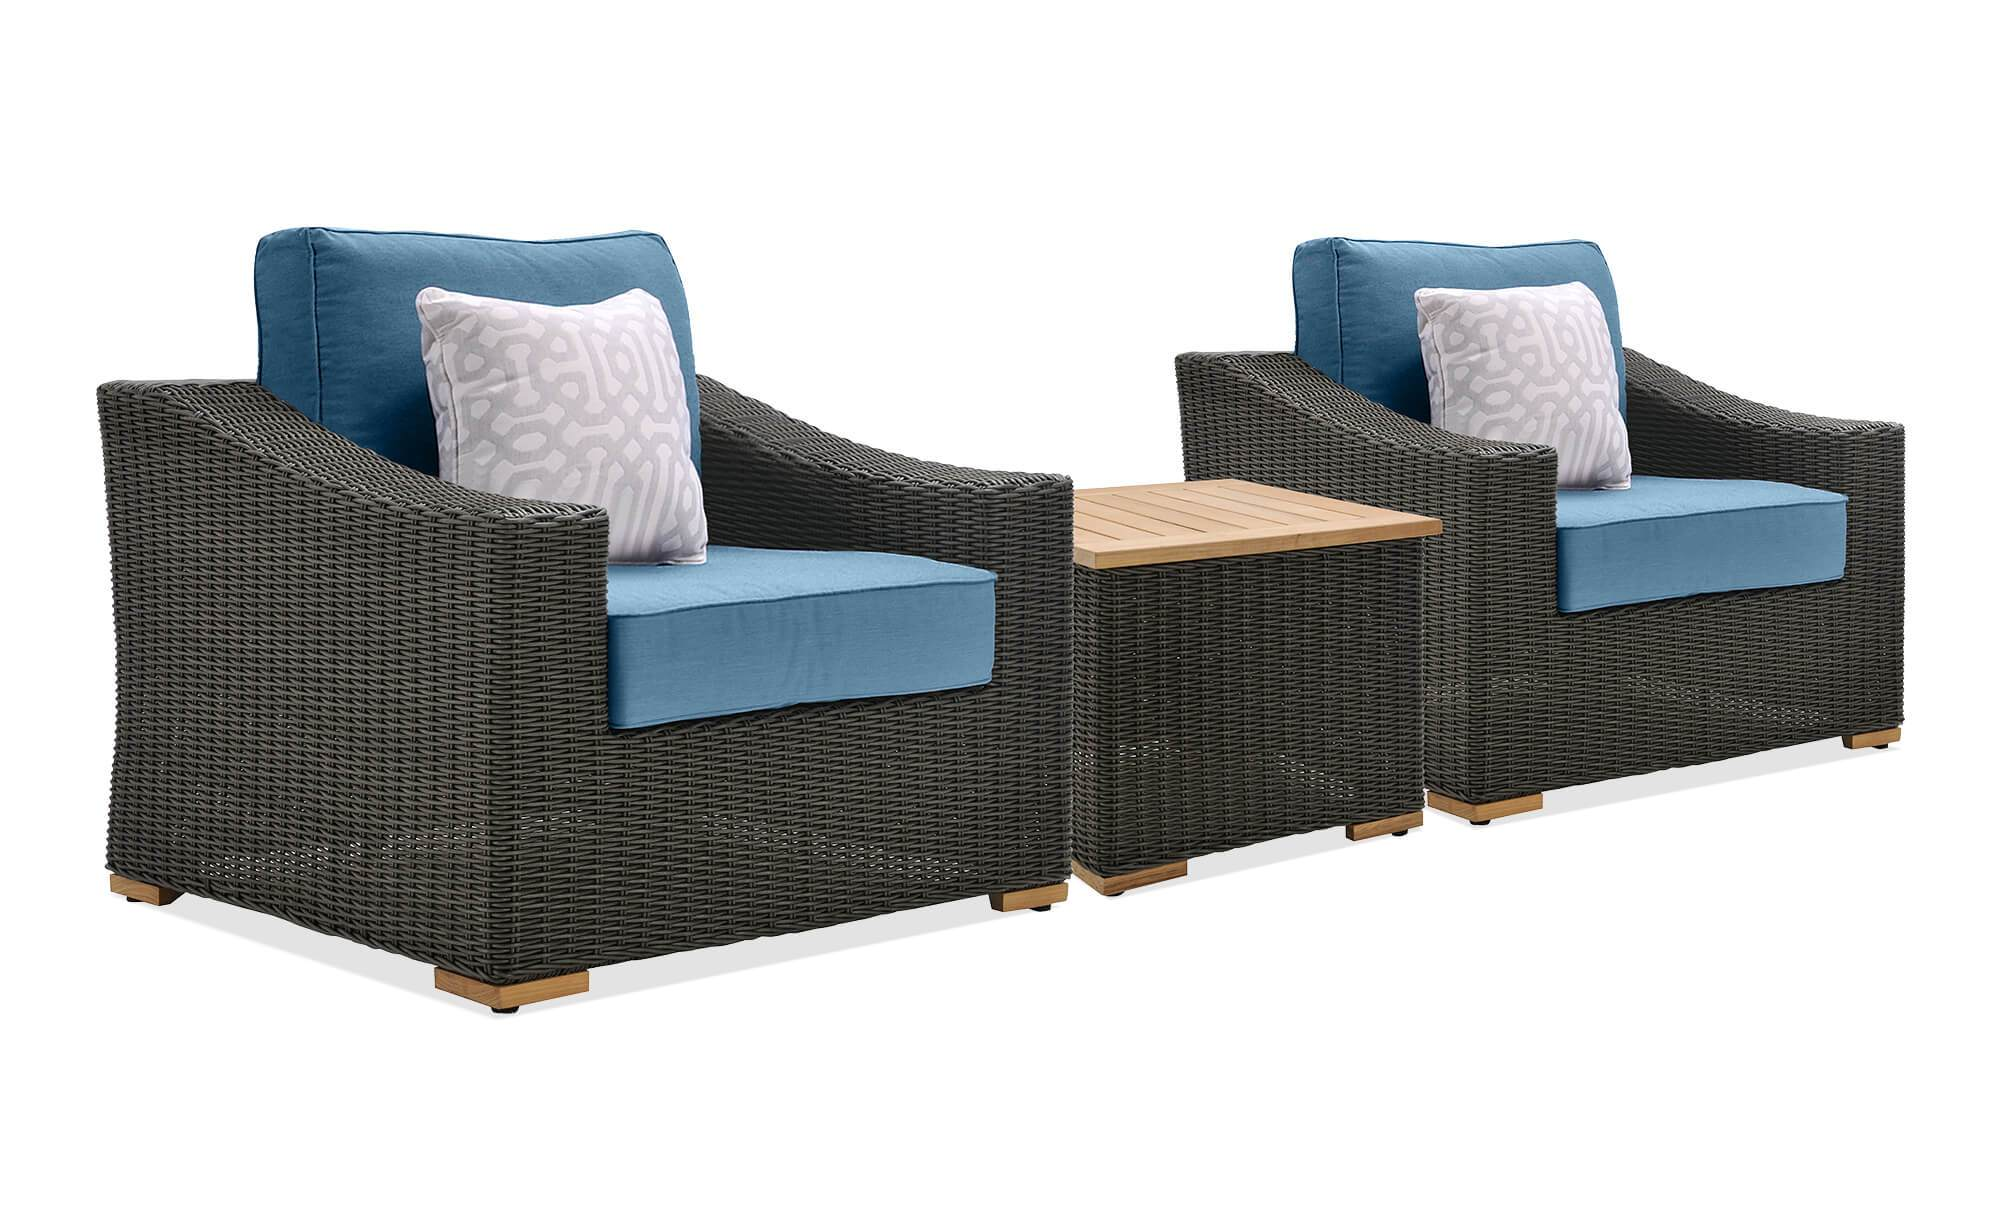 Stupendous New Boston 3 Piece Patio Conversation Set 2 Lounge Chairs Caraccident5 Cool Chair Designs And Ideas Caraccident5Info